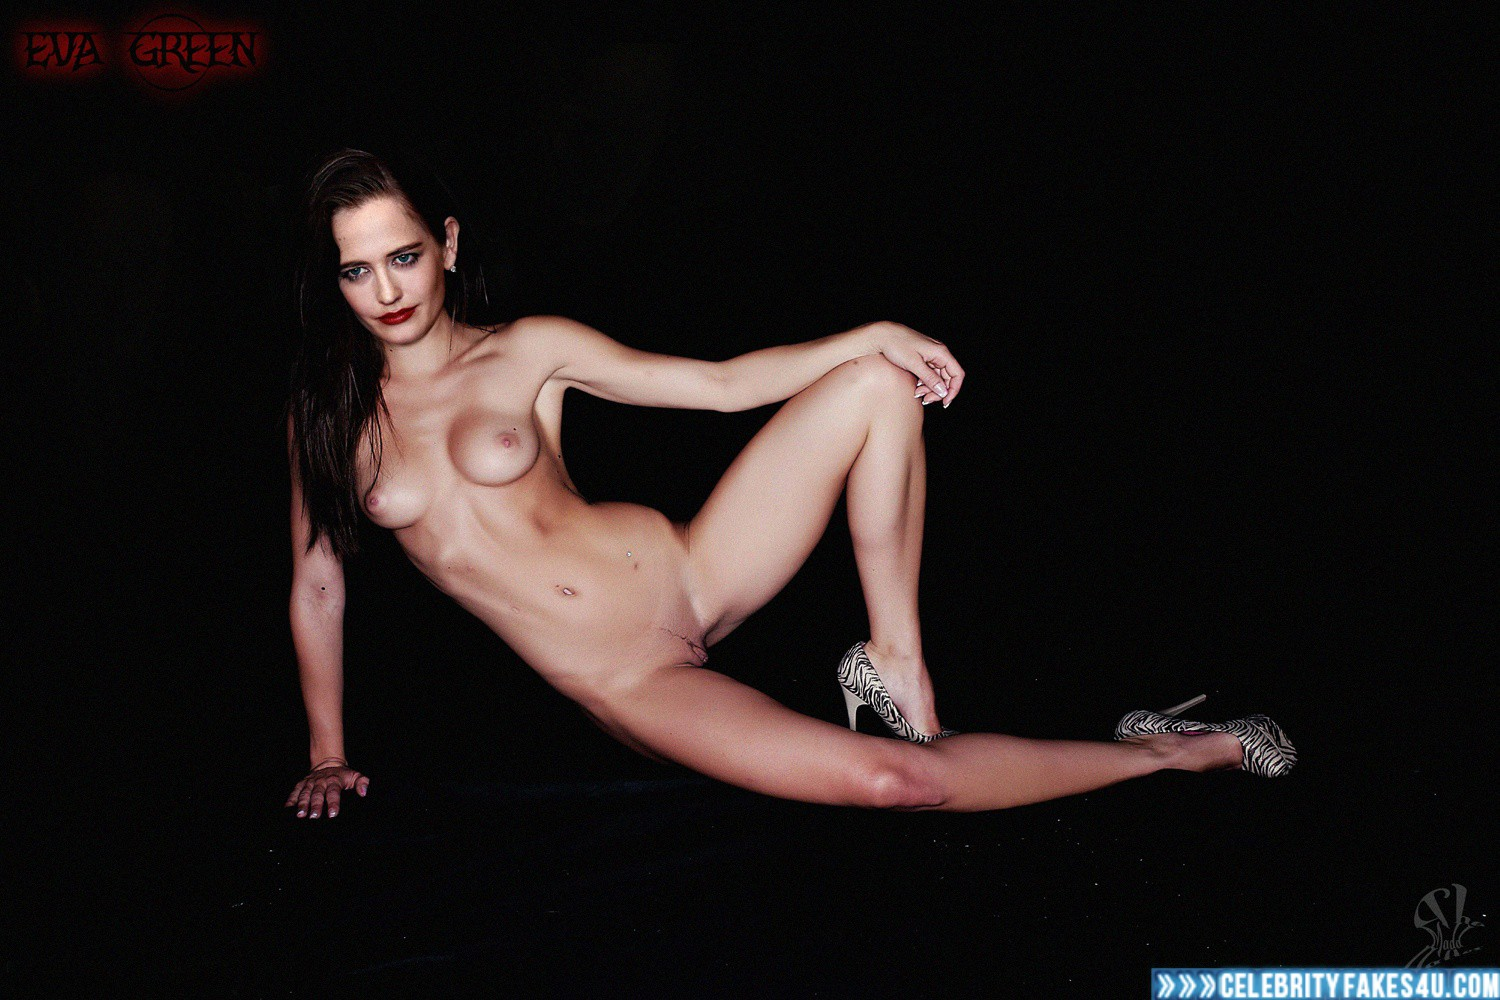 eva-green-fake-nude-pics-hot-sexy-naked-girls-pictures